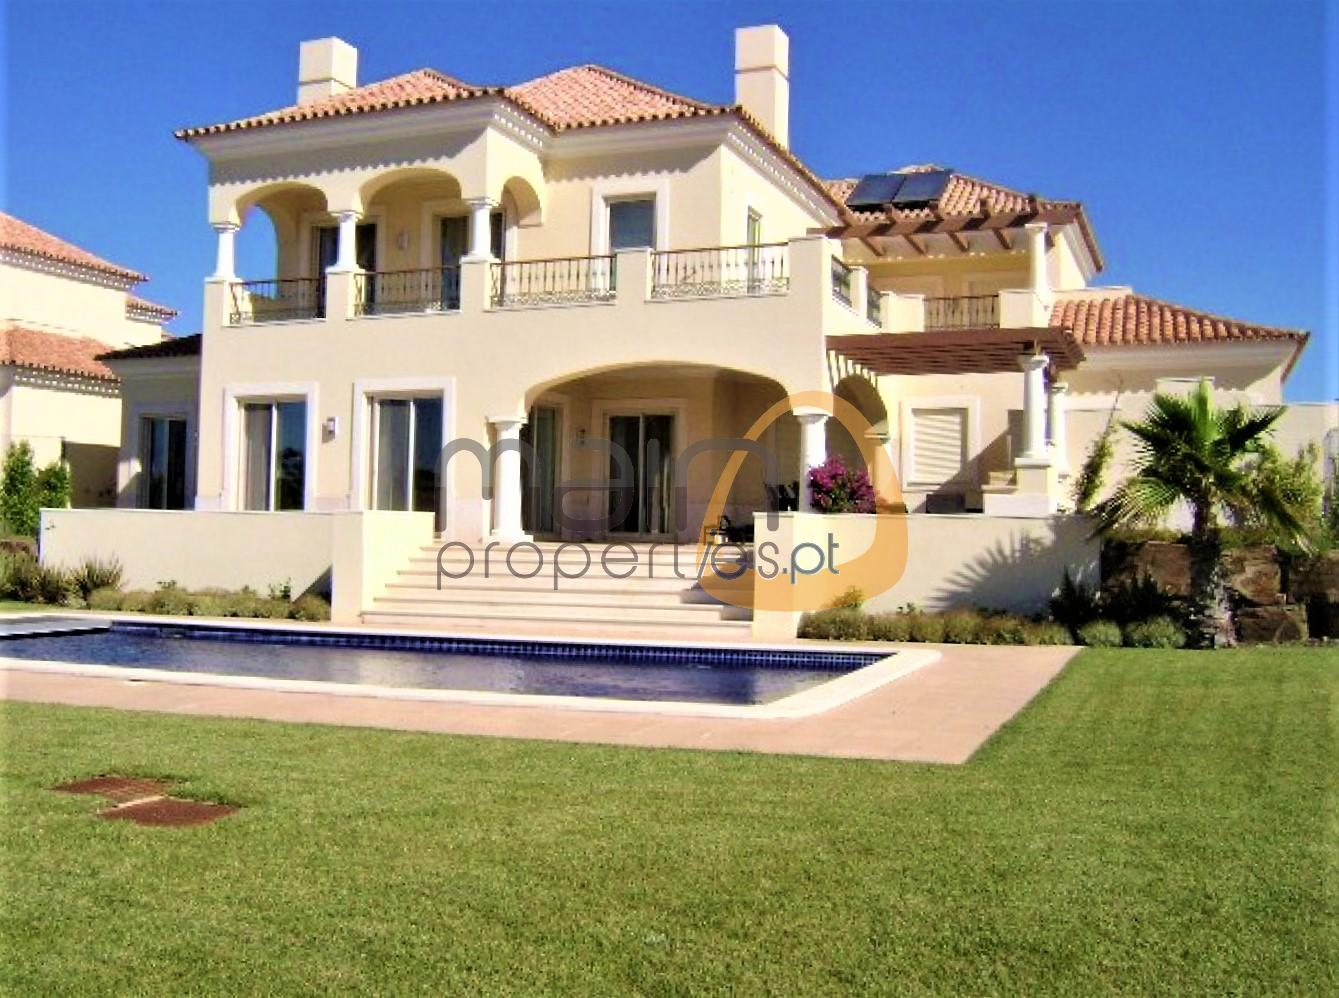 Luxury 4 bedroom villa with golf view at Monte Rei Golf & Country Club